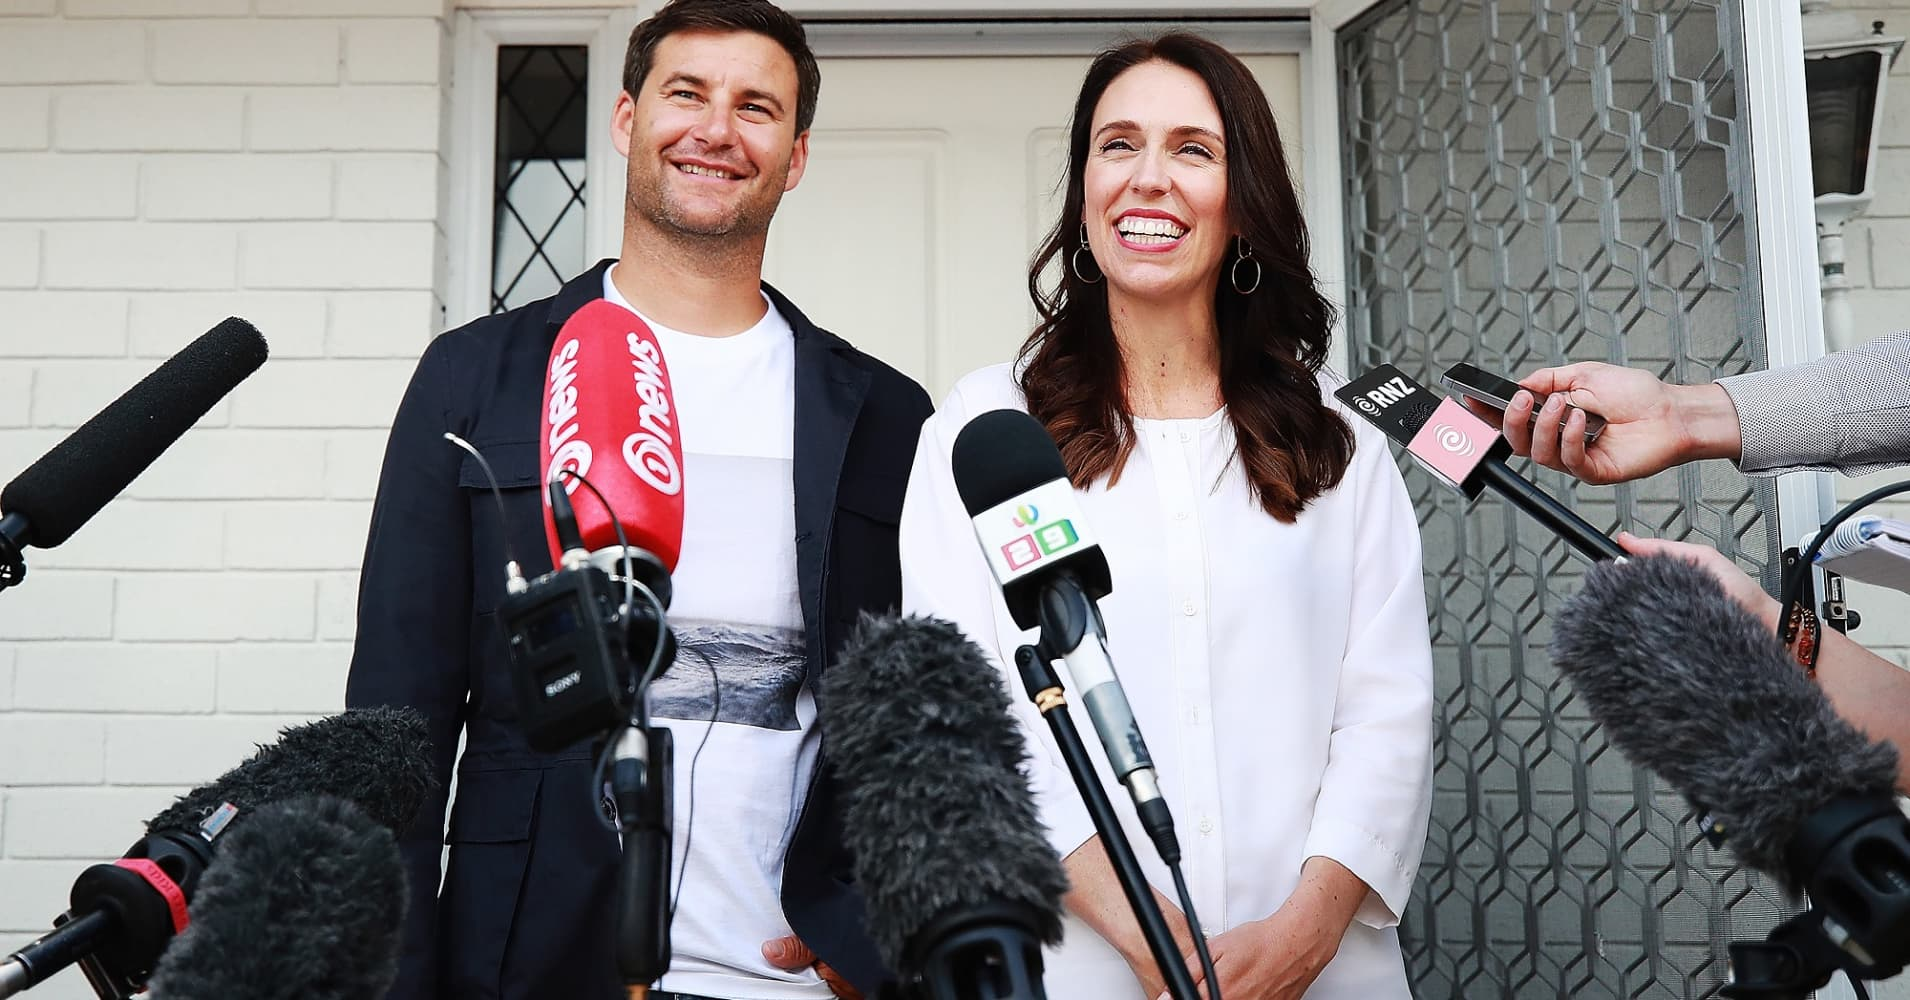 New Zealand Prime Minister Jacinda Ardern and her partner Clarke Gayford are expecting their first child in June 2018. Deputy Prime Minister Winston Peters will take on Prime Ministerial duties for six weeks after the baby is born.